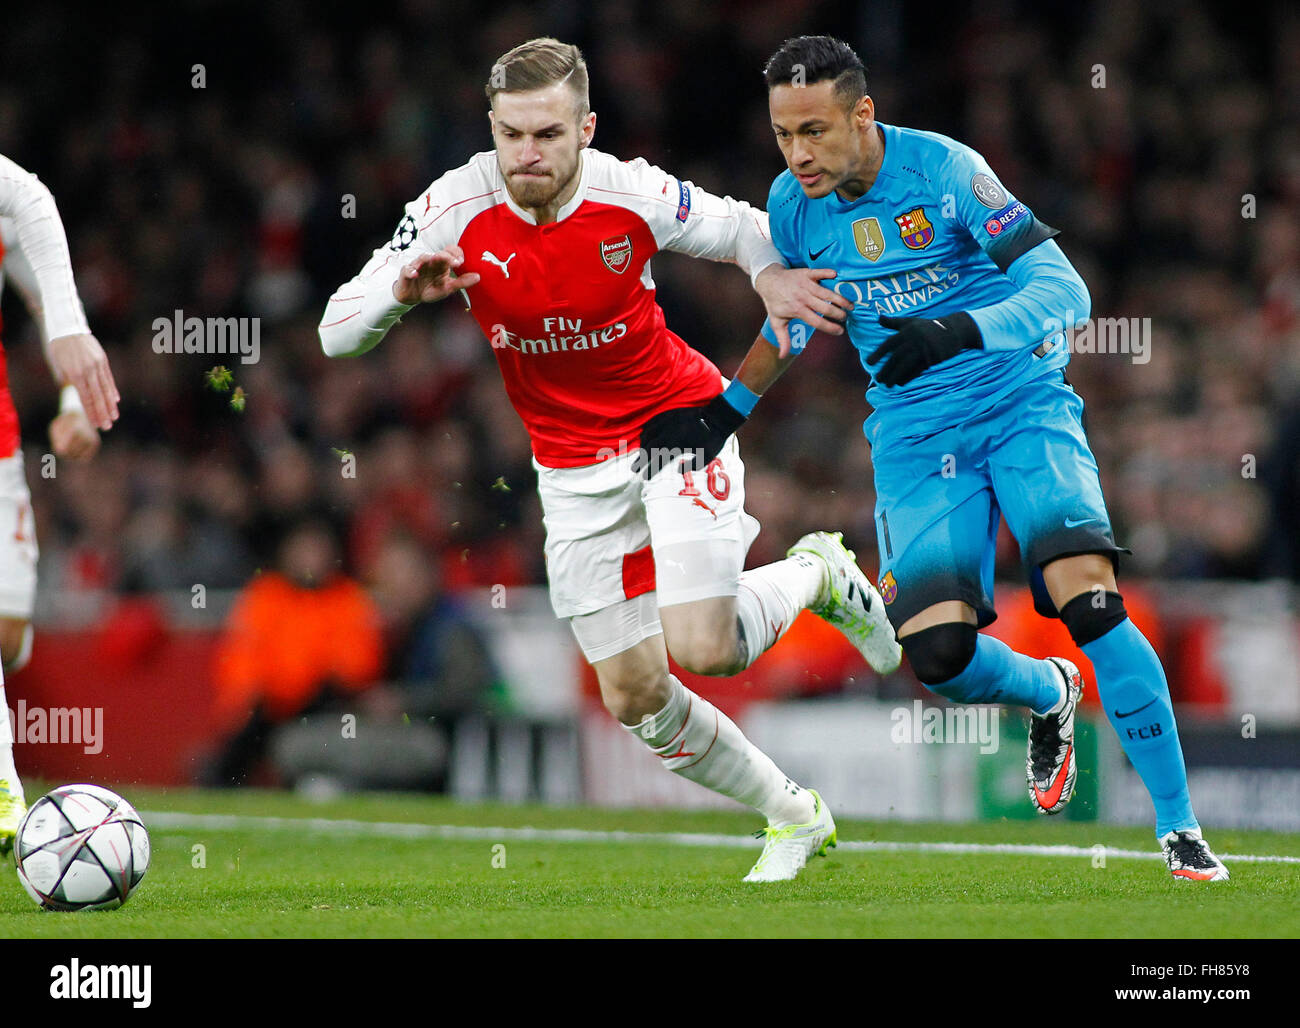 a49dd1745f4 Aaron Ramsey of Arsenal and Neymar of Barcelona during the Champions League  match between Arsenal and Barcelona at The Emirates Stadium on February 23,  ...